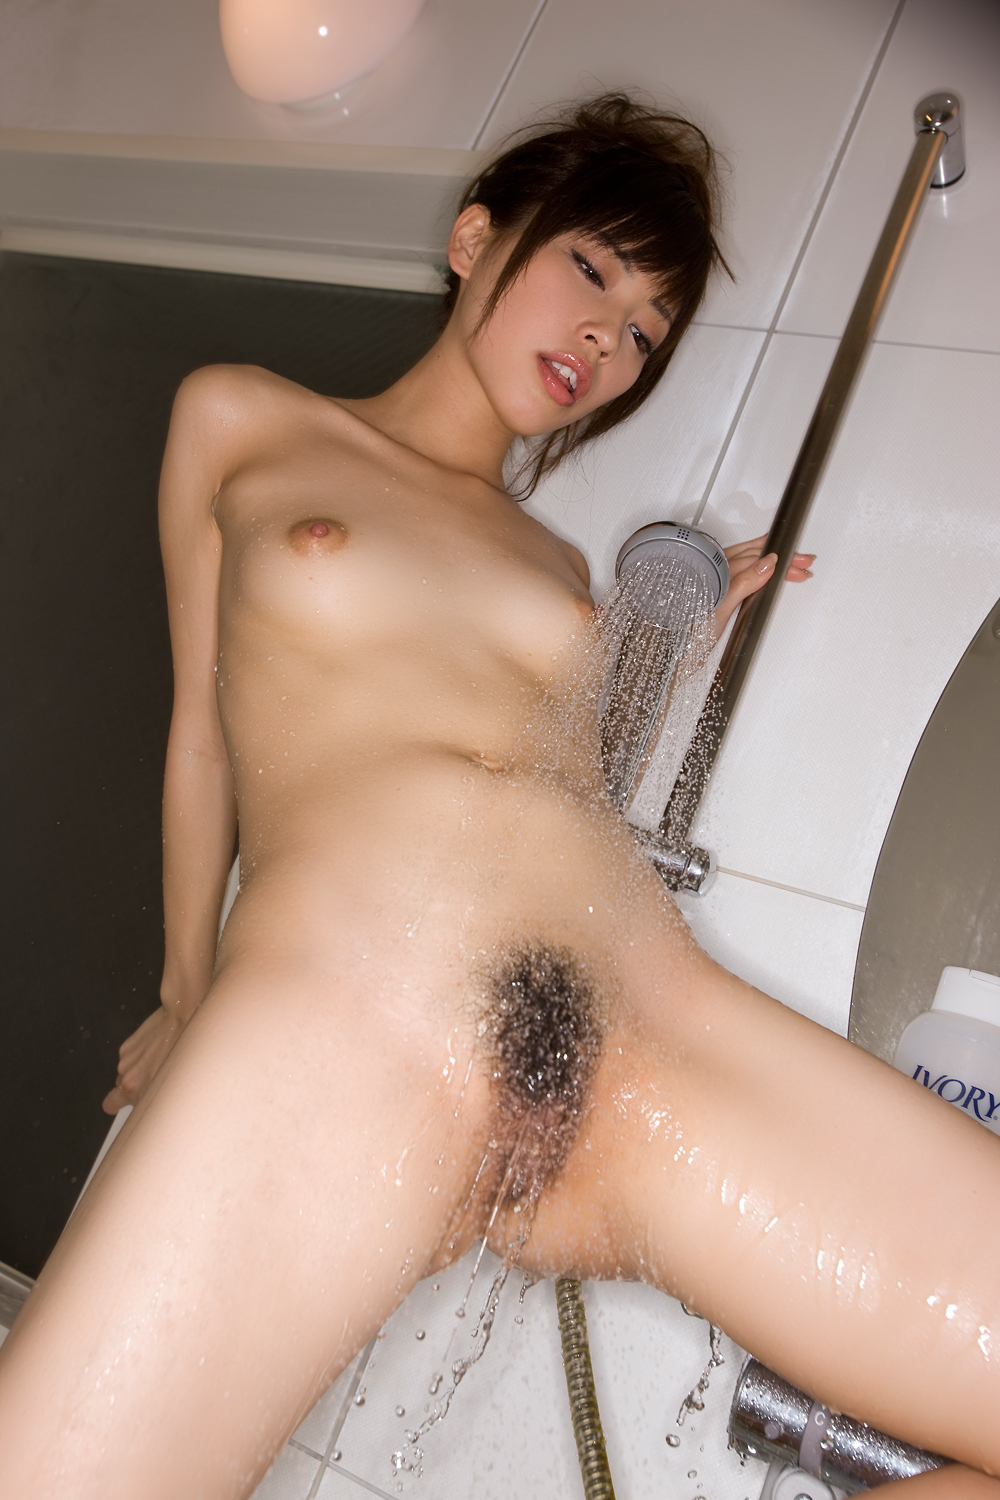 Nude shower chick hot in